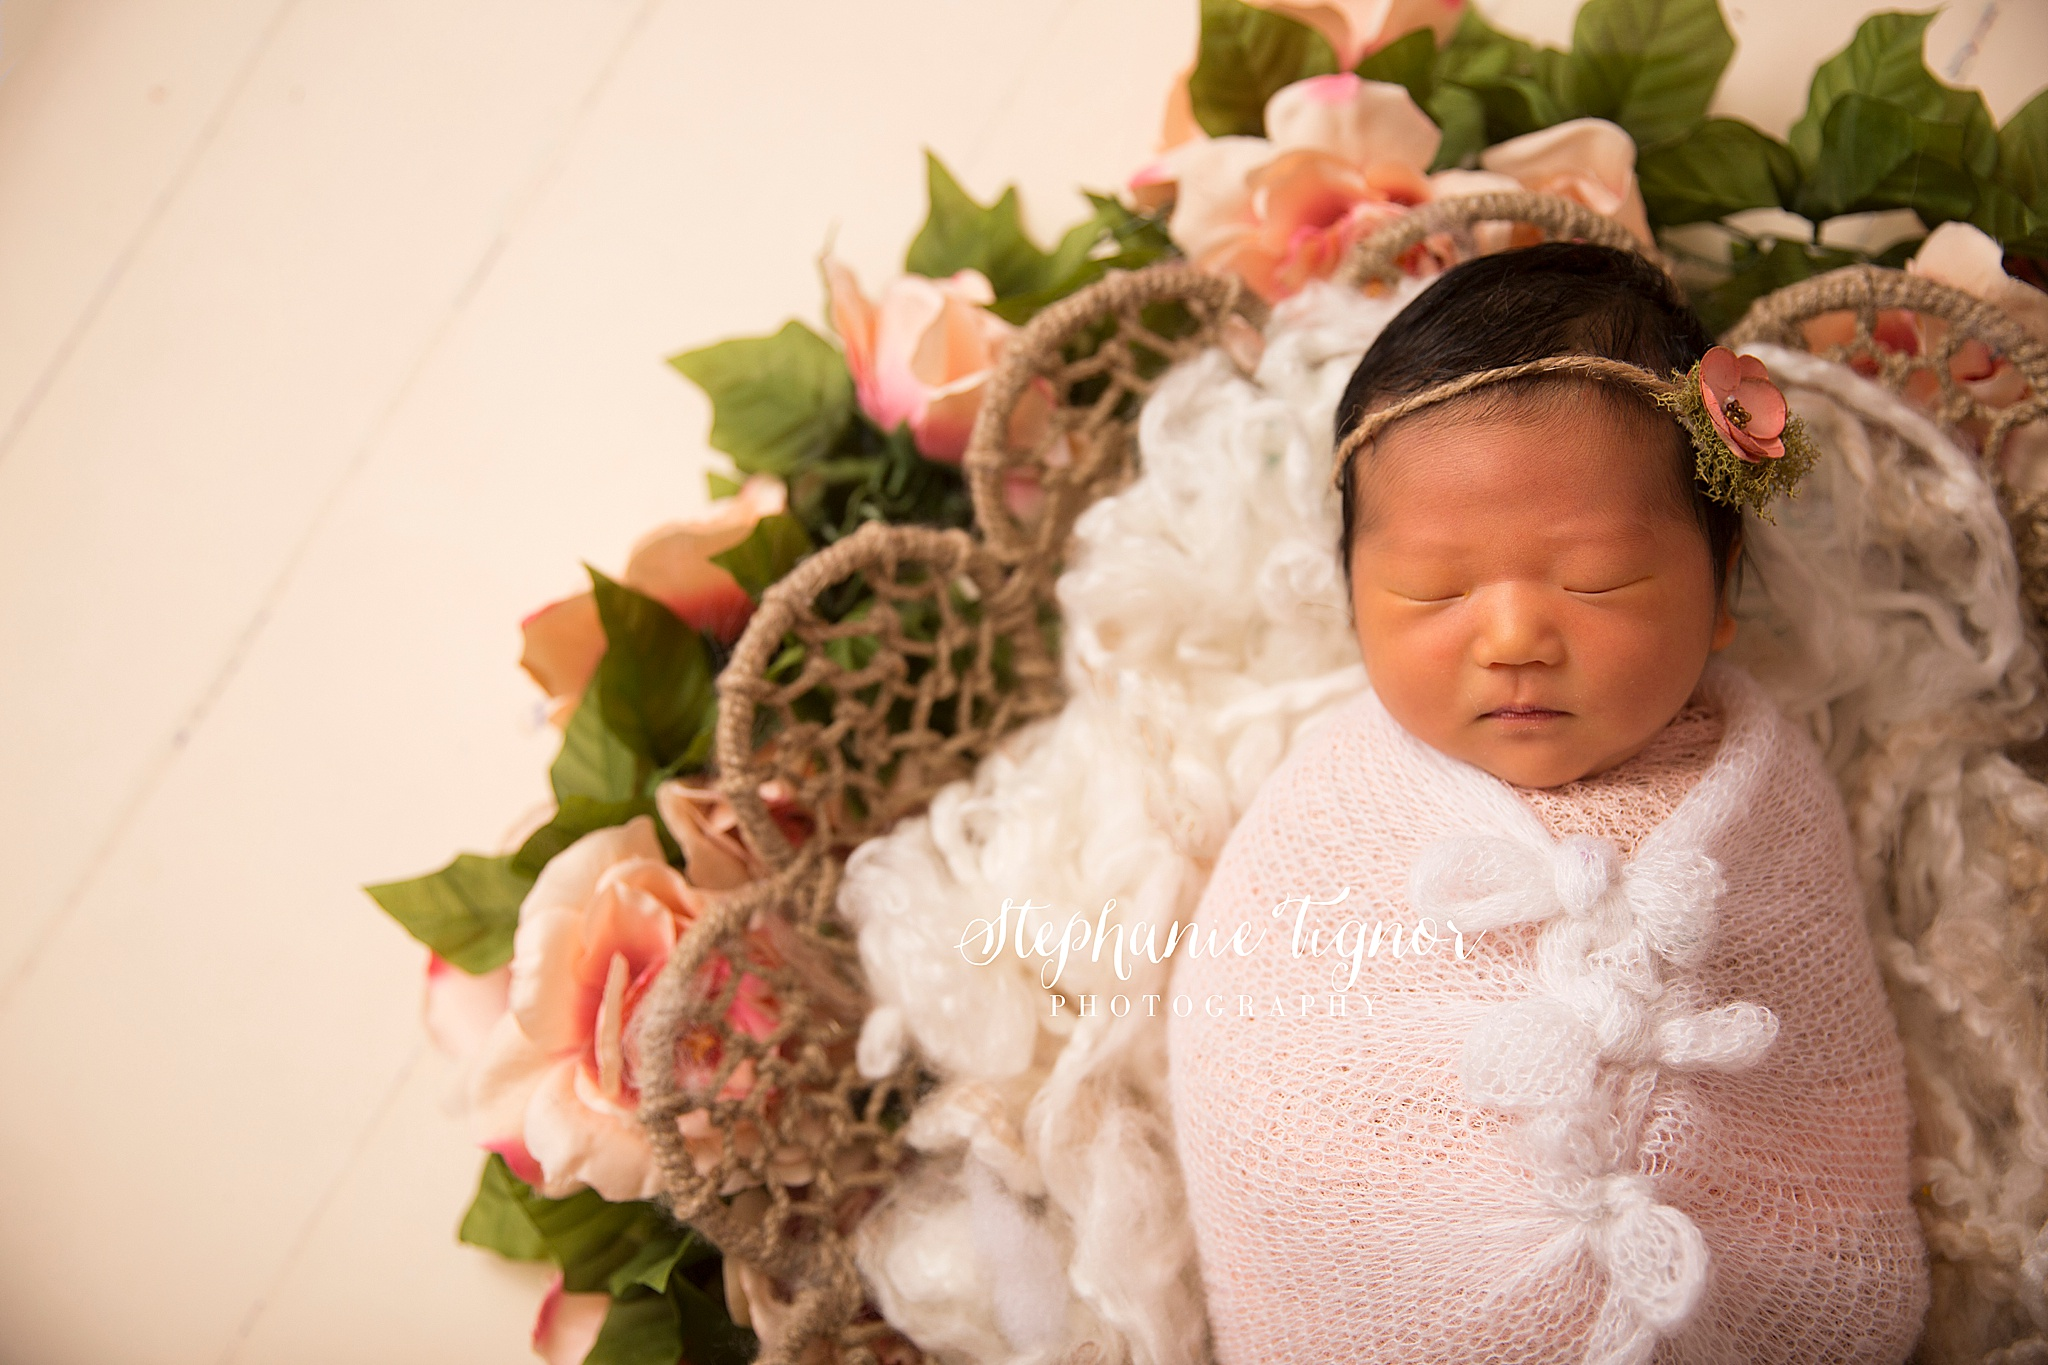 Stephanie Tignor Photography_Newborn Photographer_0073.jpg